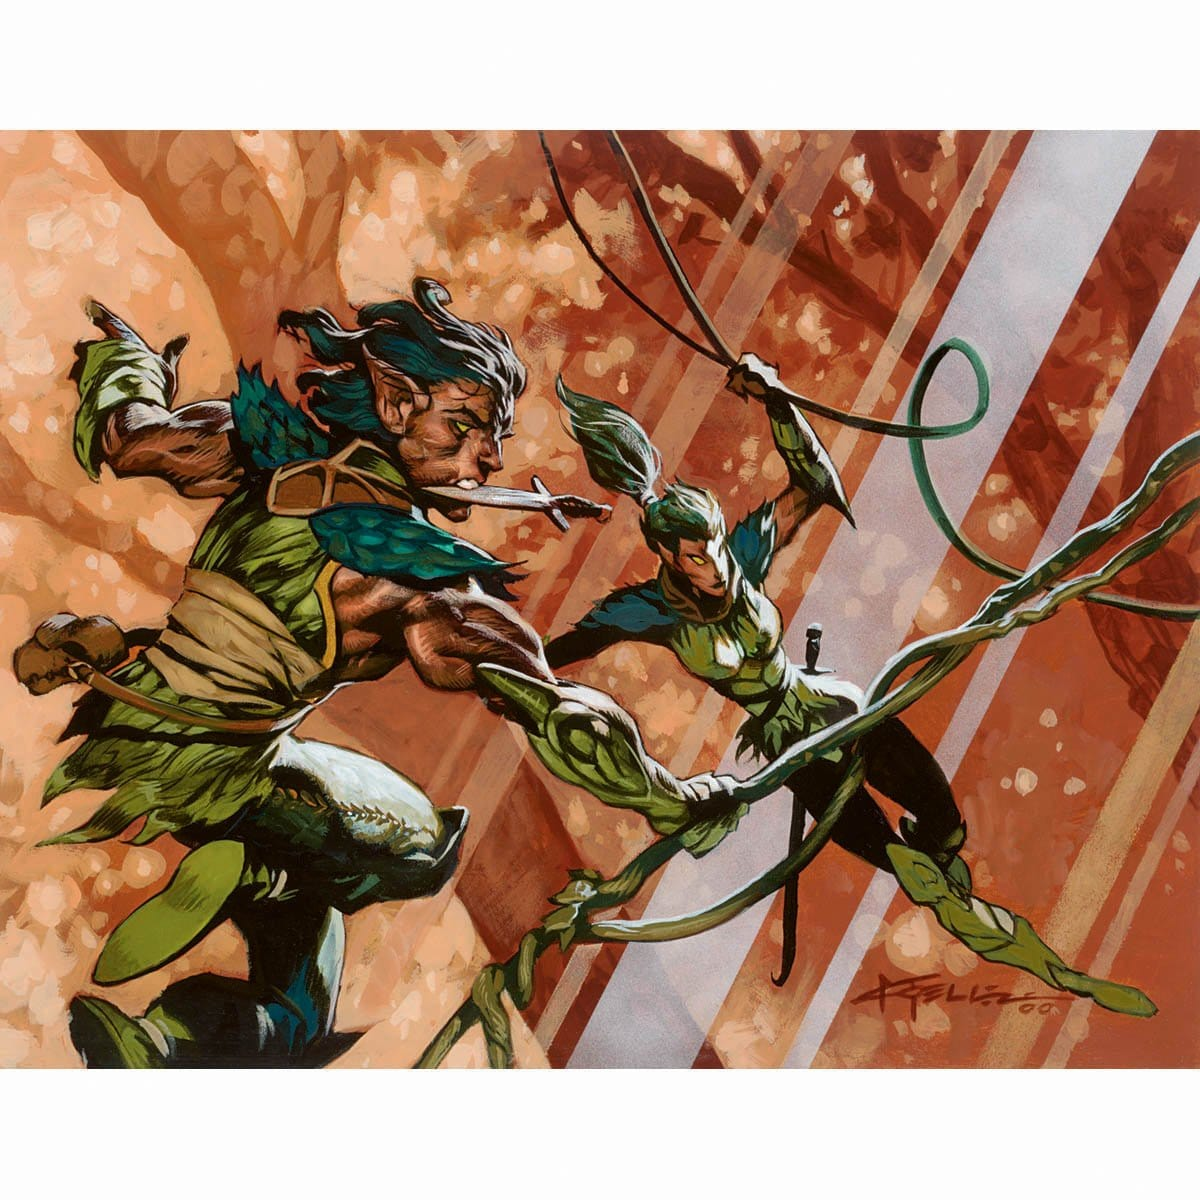 Wood Elves Print - Print - Original Magic Art - Accessories for Magic the Gathering and other card games